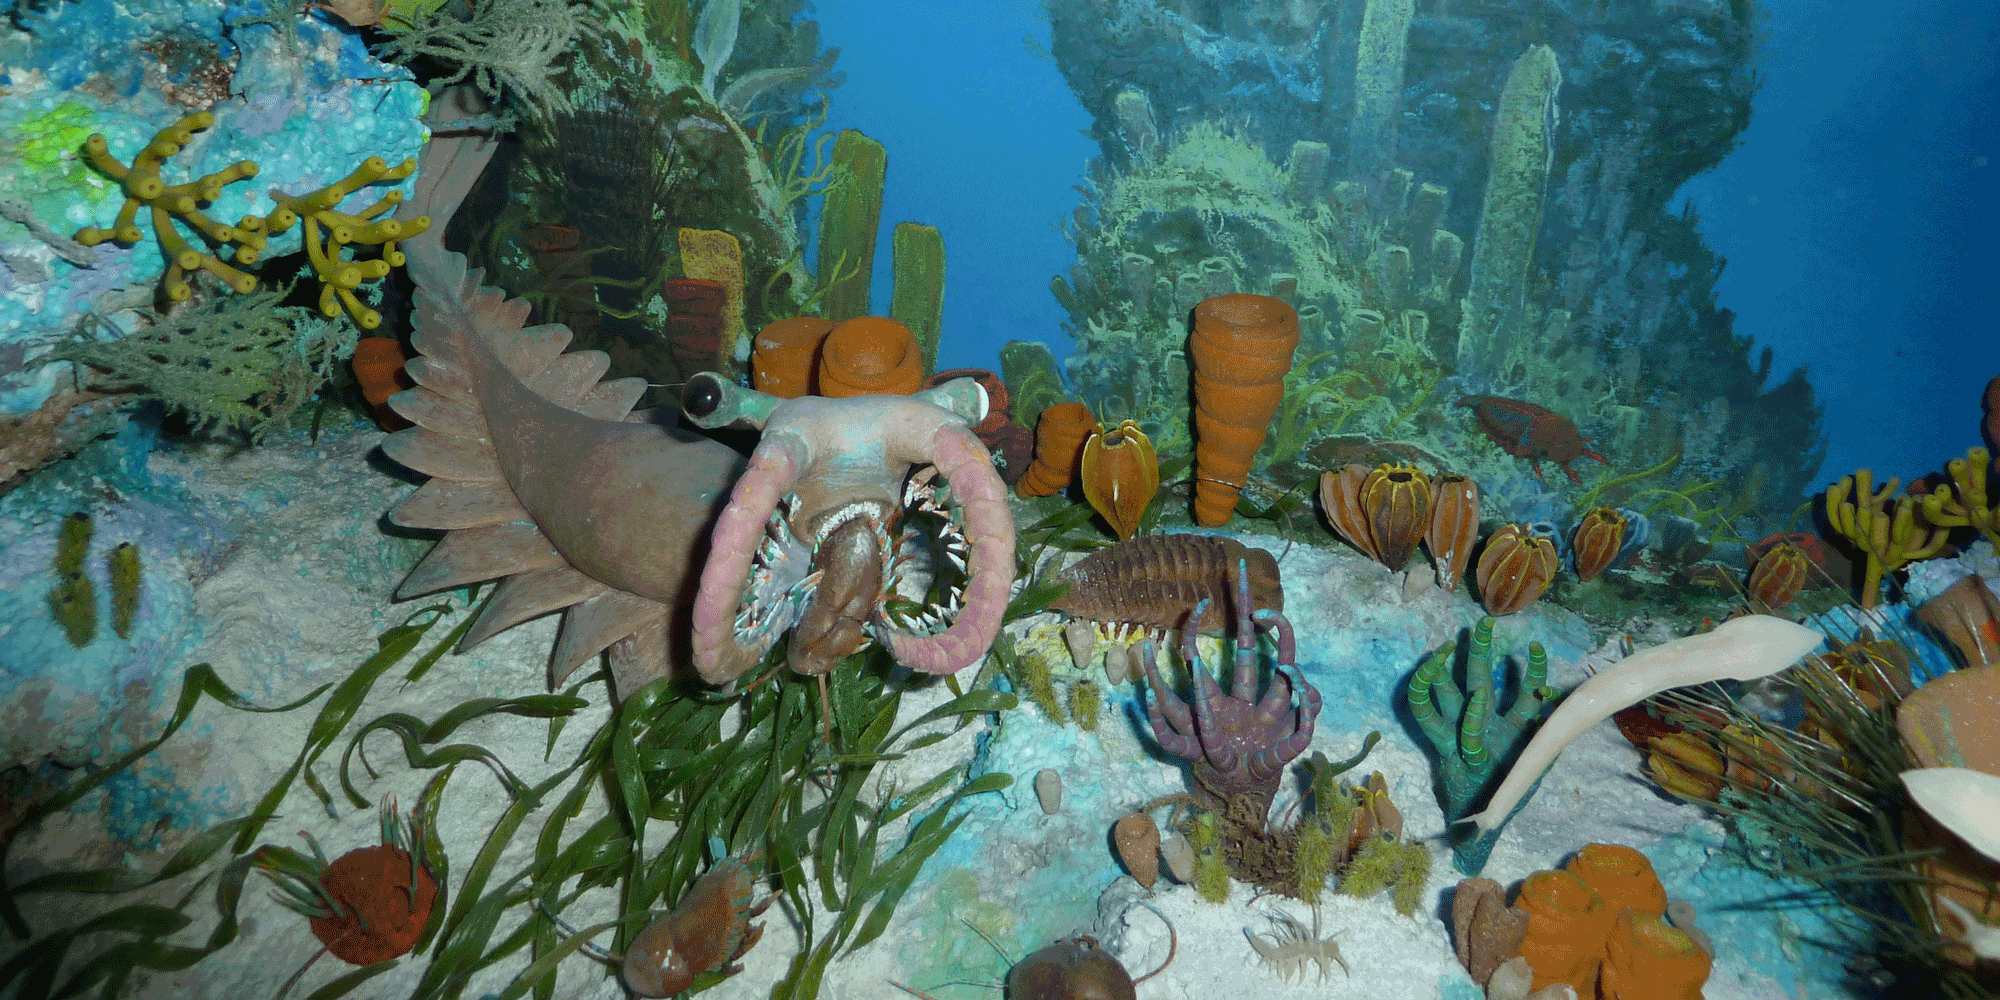 Photograph of a diorama depicting a Cambrian marine ecosystem.